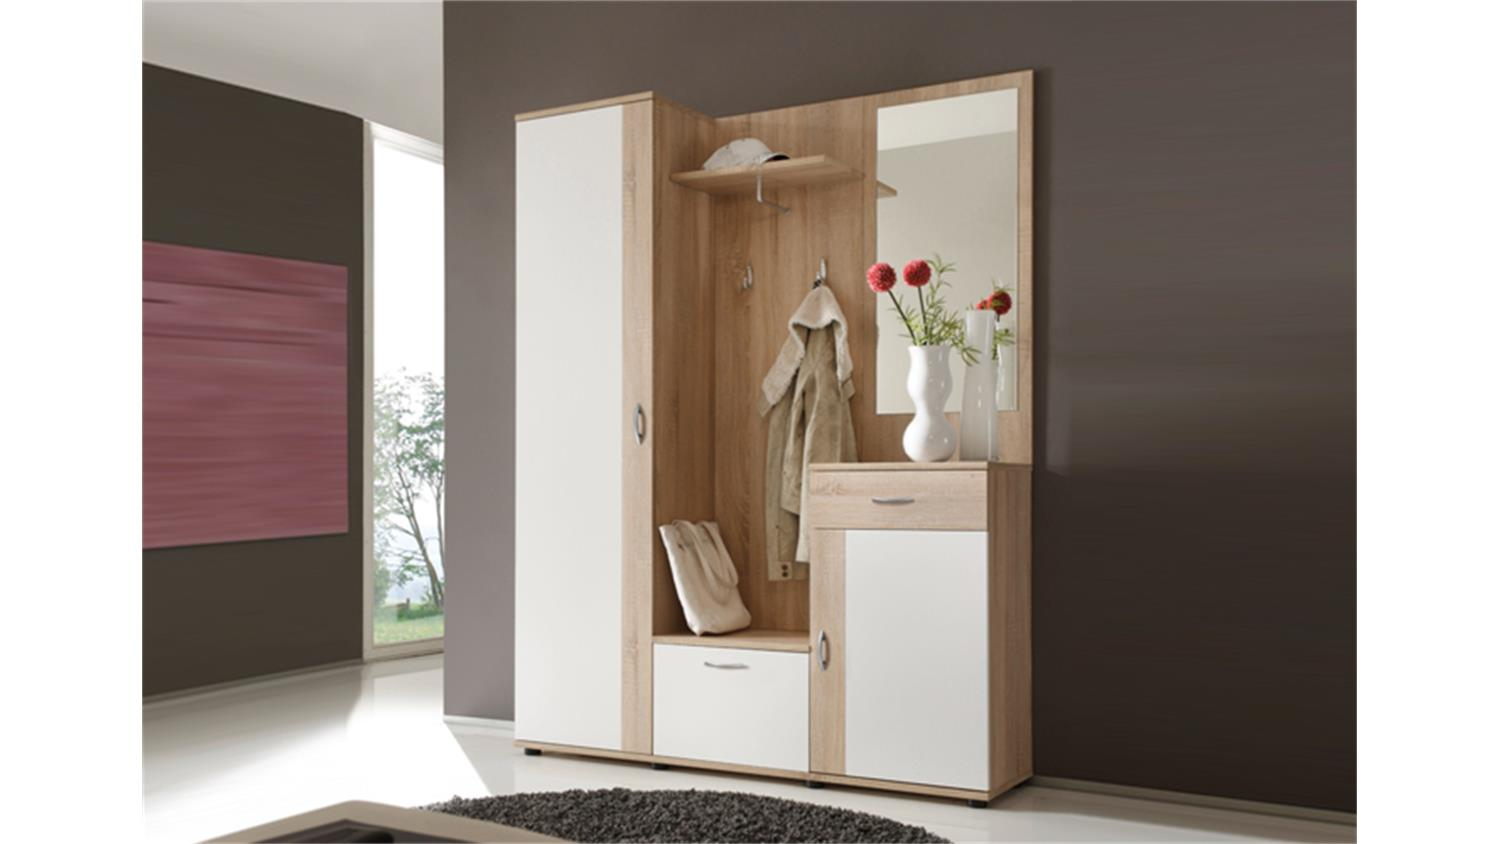 garderobe patent spiegel sonoma eiche und wei 3 teilig. Black Bedroom Furniture Sets. Home Design Ideas